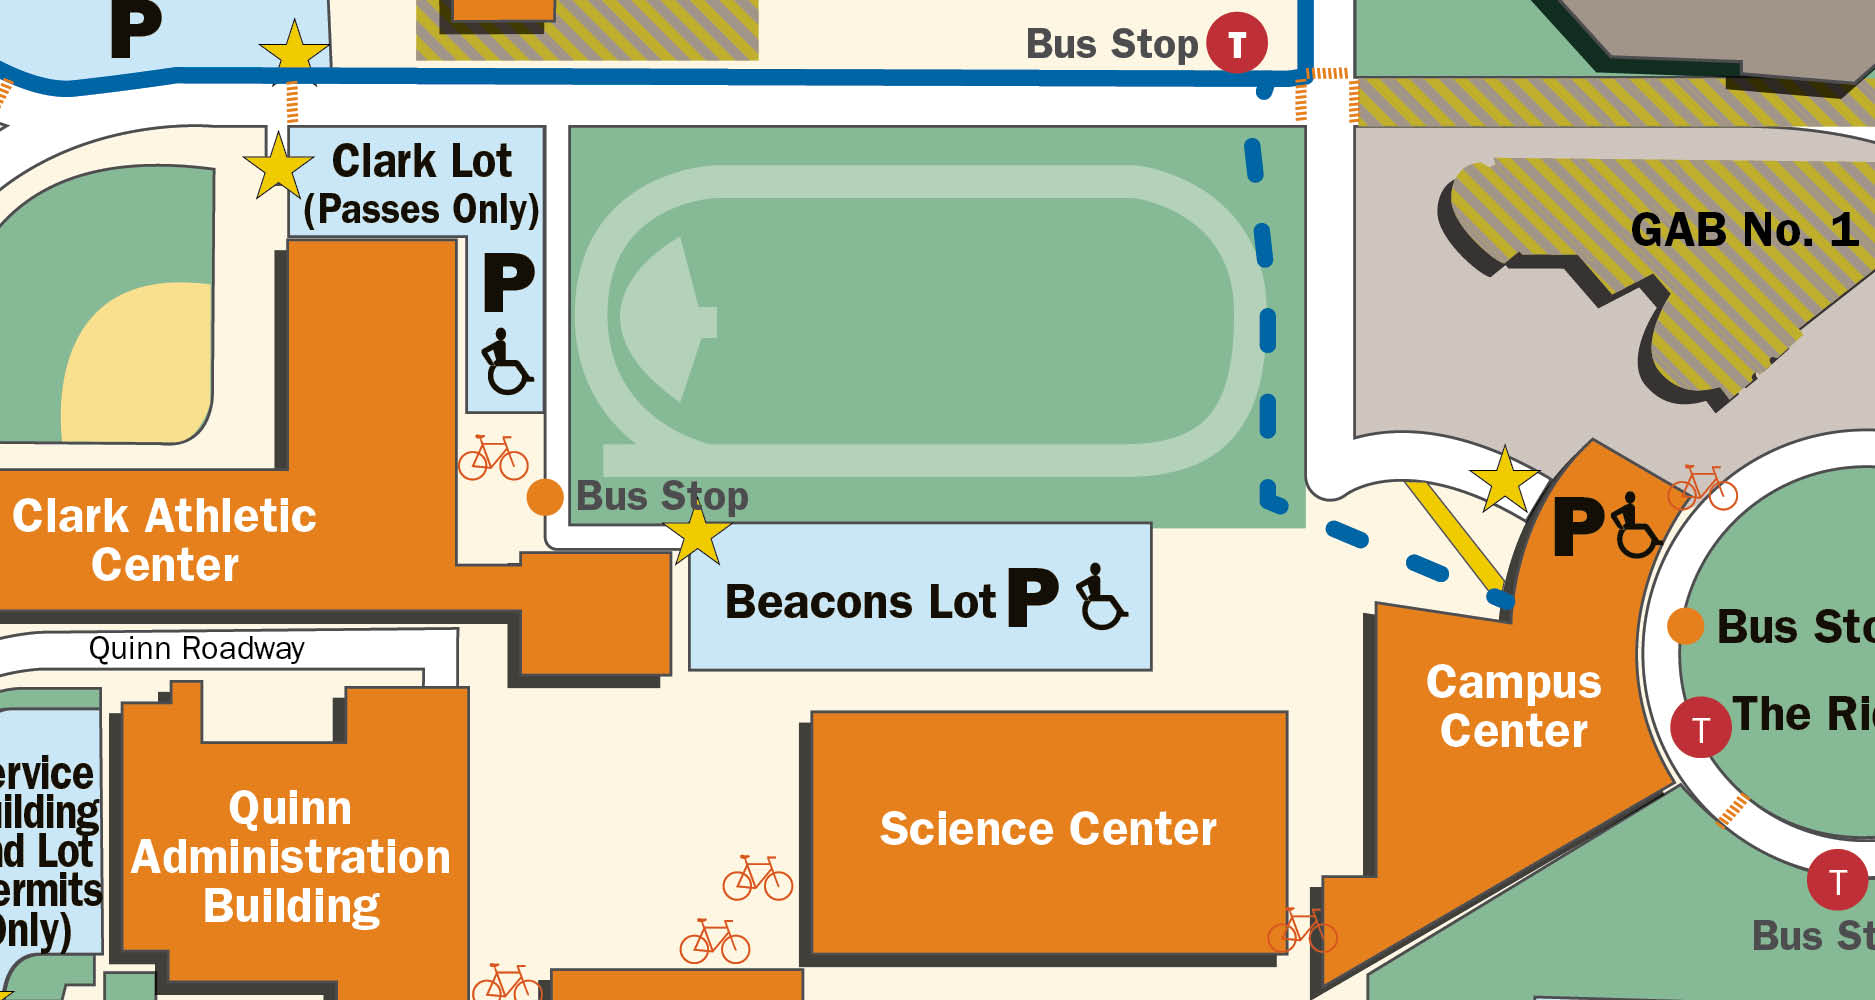 Beacons Lot map